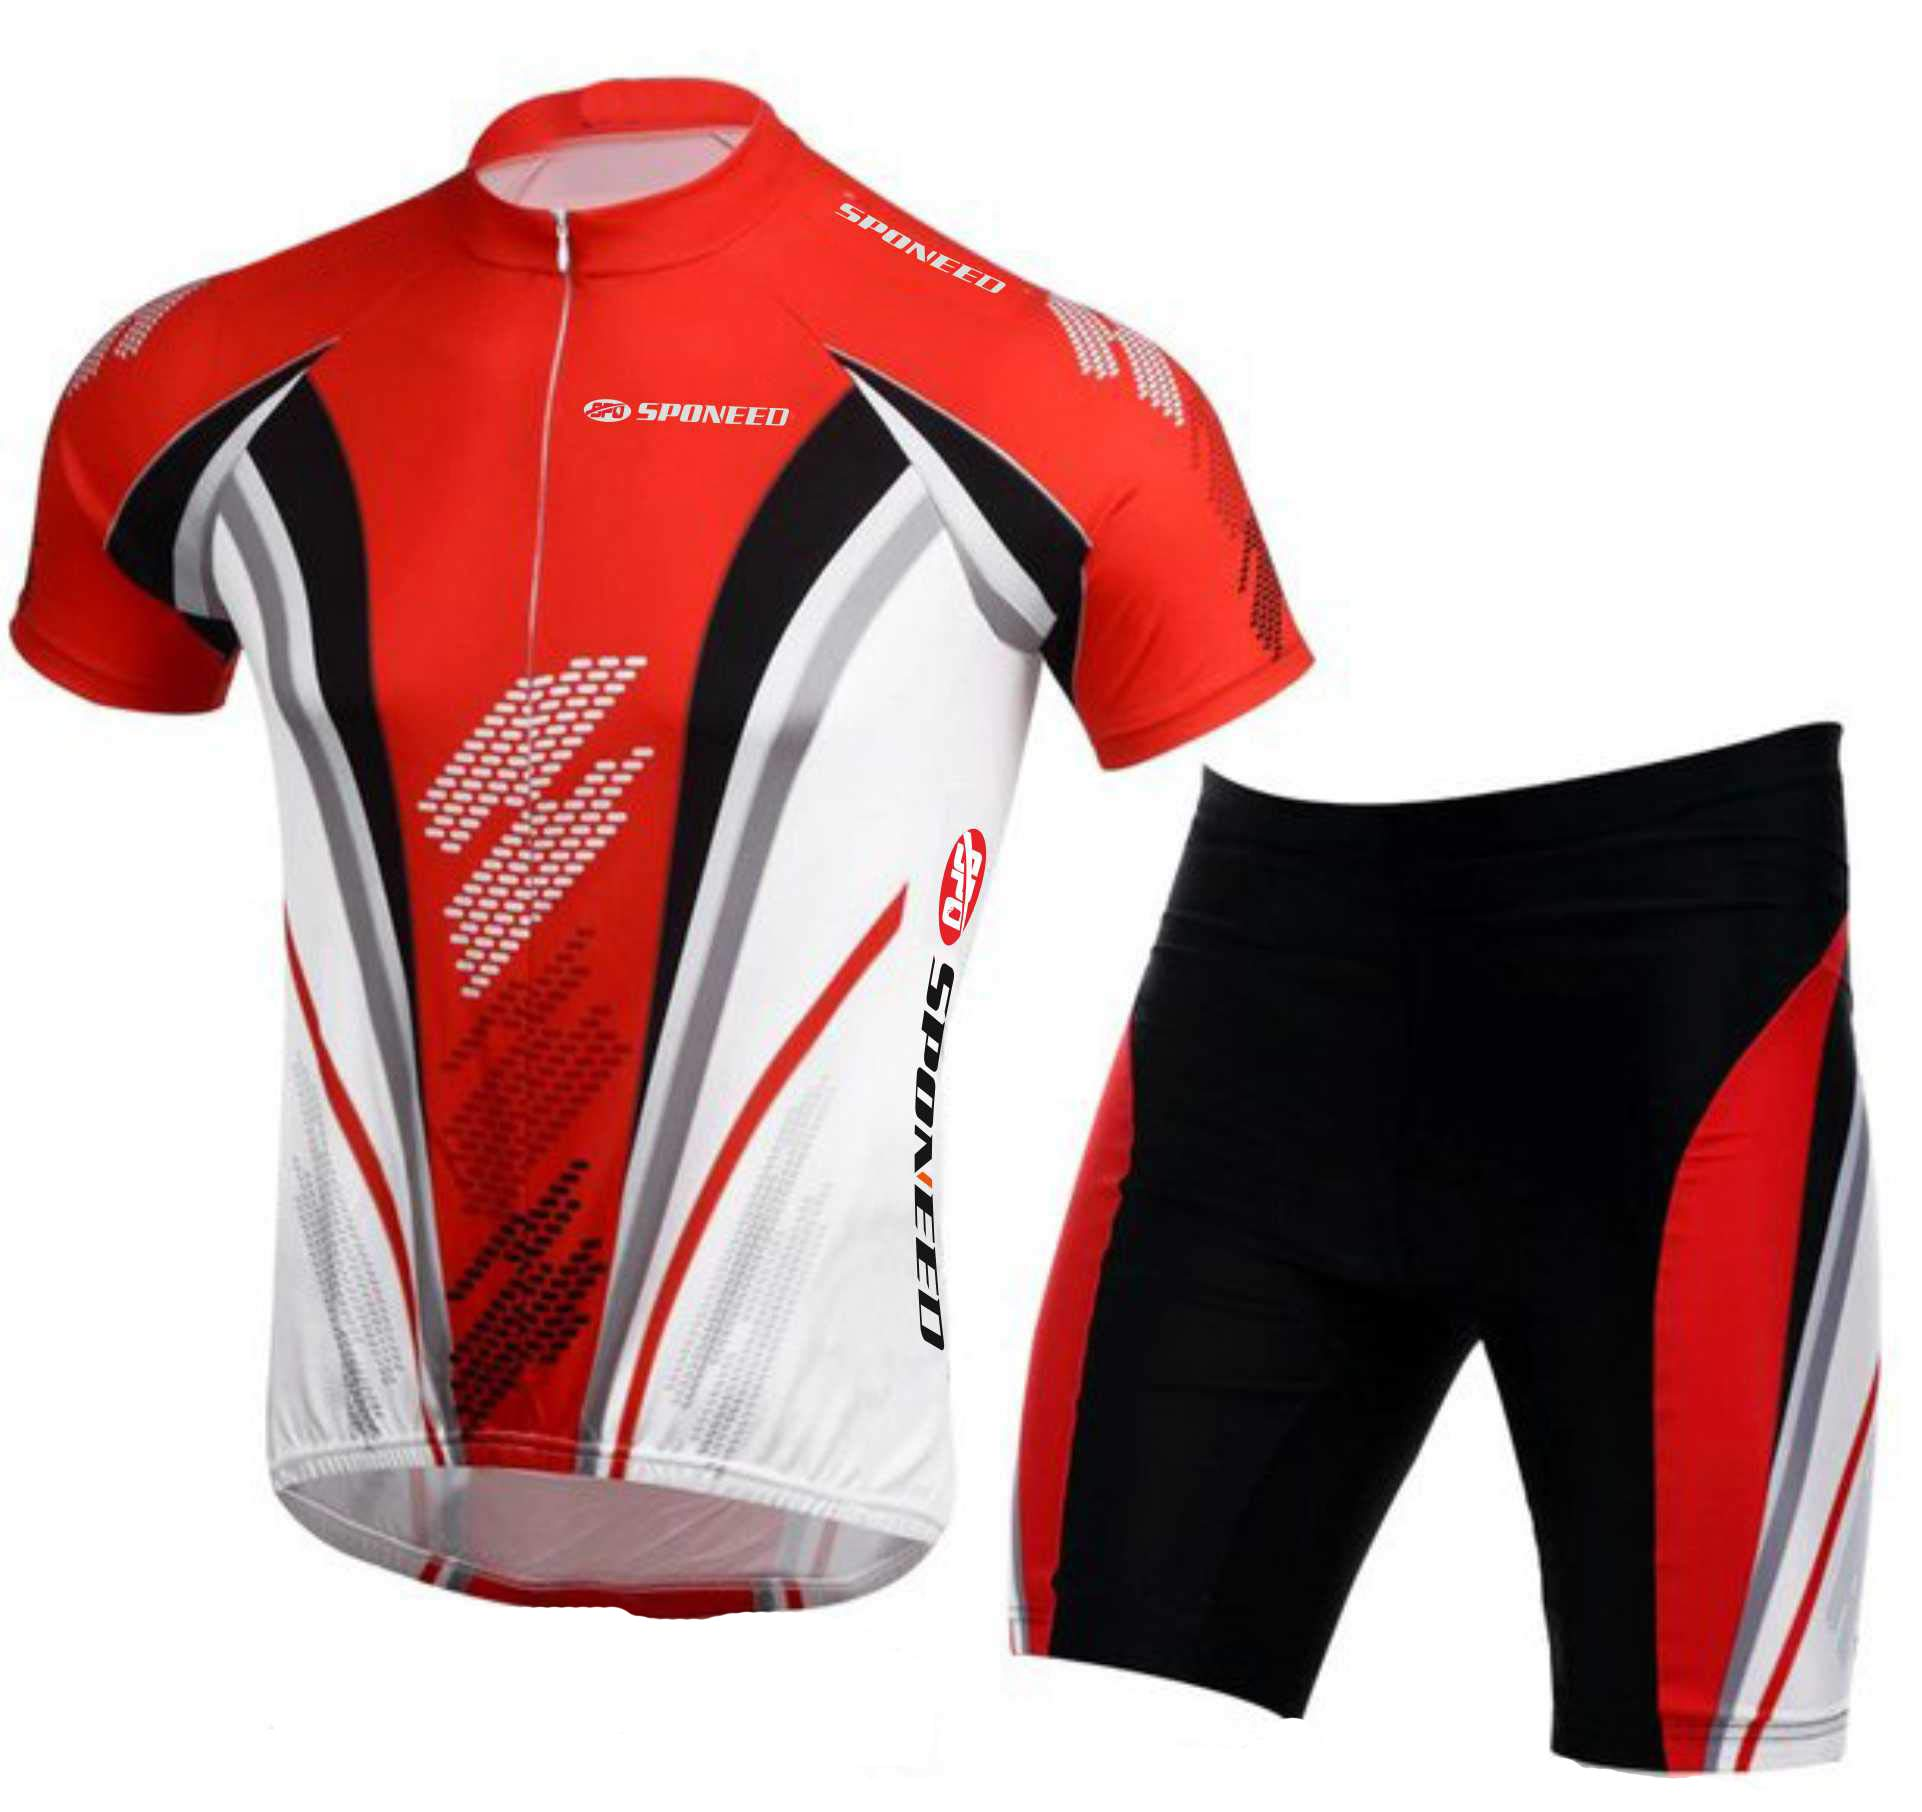 6d162d219 sponeed Cycling Gear for Men Cycle Jersey Set Full Zipper Bike Ride Shorts  Men Bicycle Suits Race Road Biking M US Red